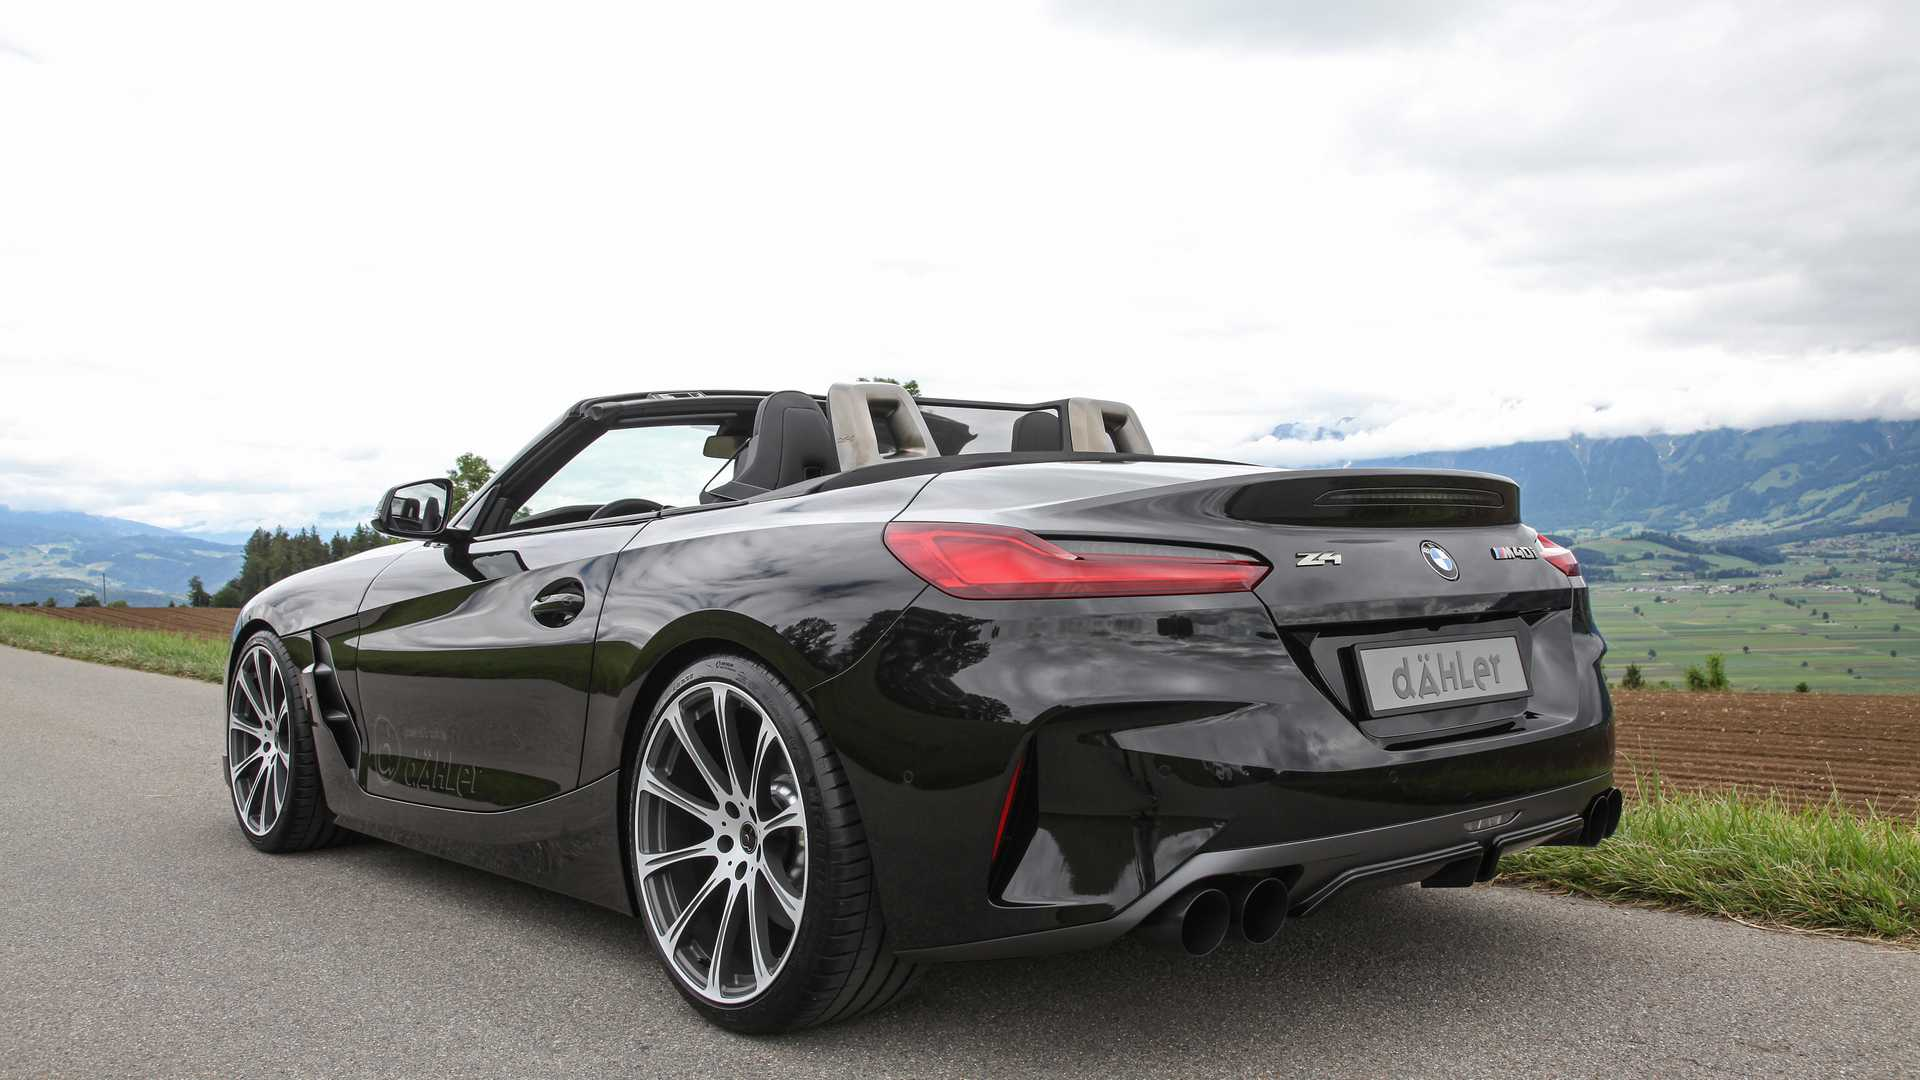 BMW-Z4-M40i-by-Dahler-11